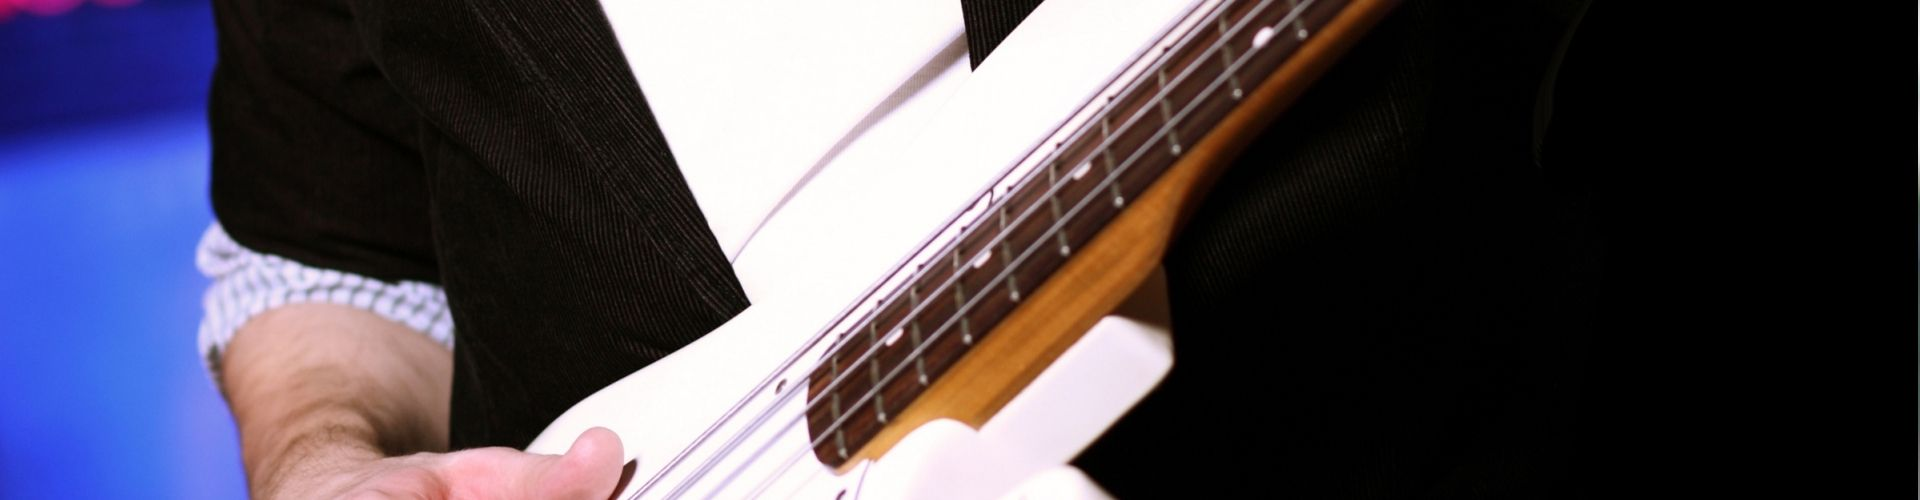 Purely Bass Guitar Image